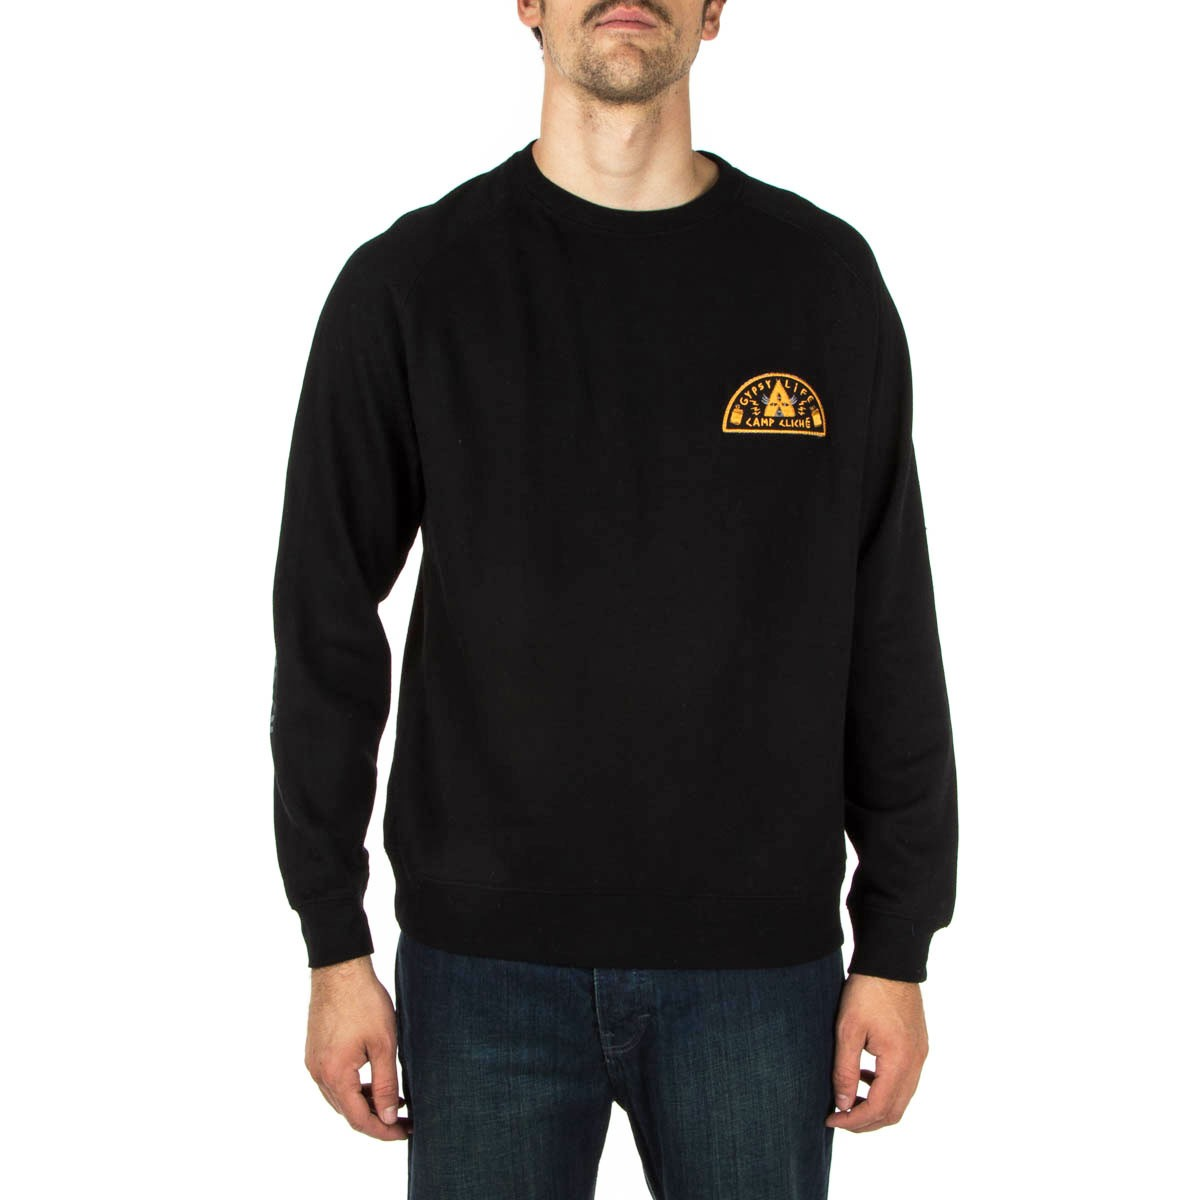 Cliche Crew Gypsy Life Patch Black FREE POST New Skateboard Sweatshirt Jumper